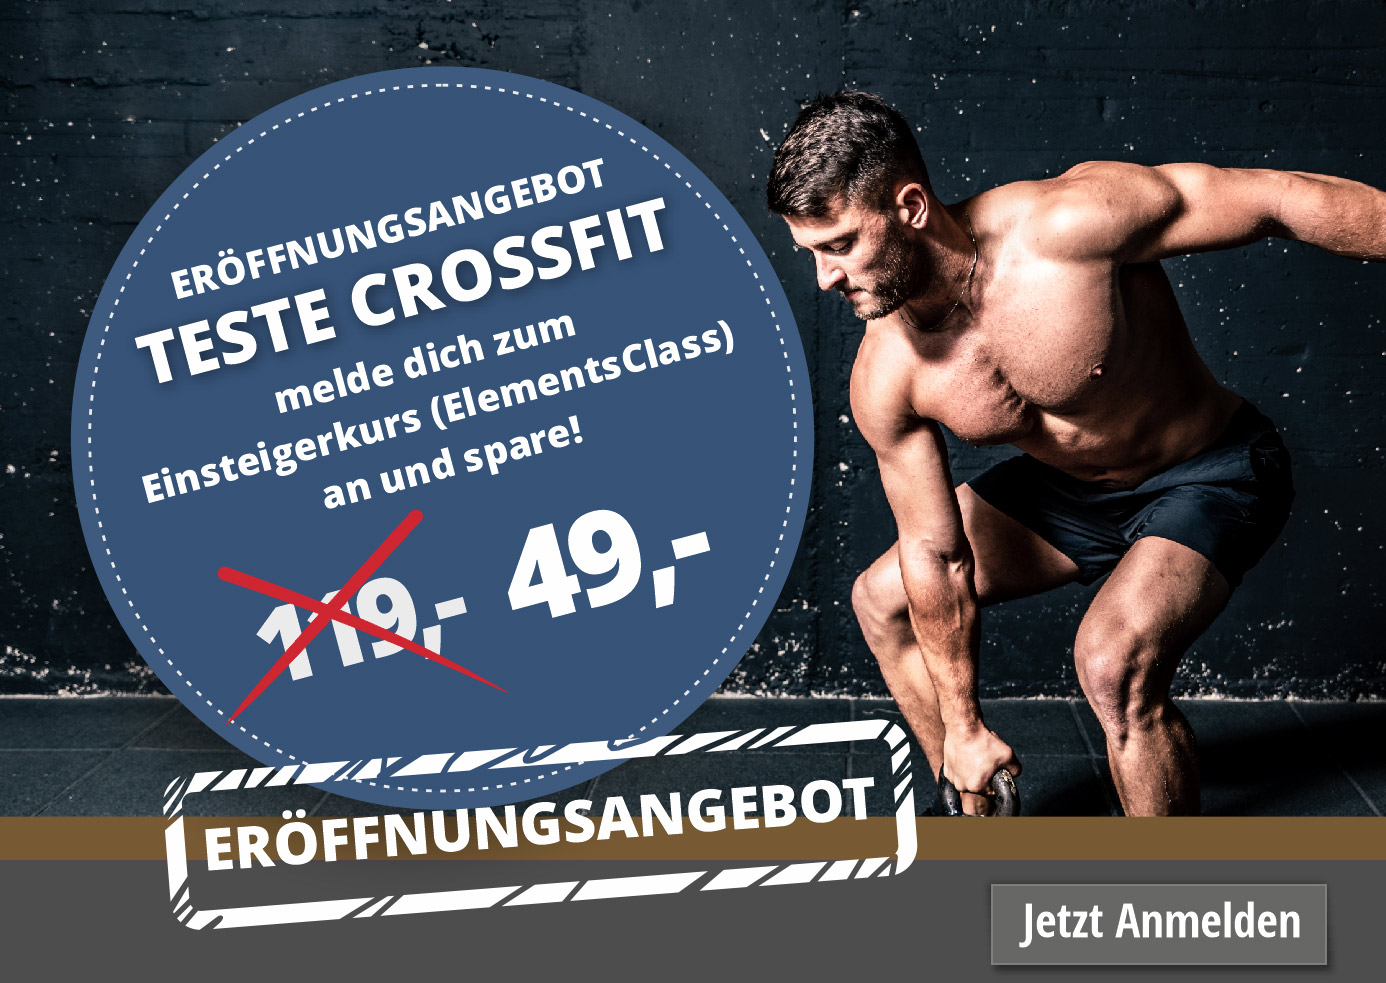 Eröffnungsangebot Crossfit Elements Class